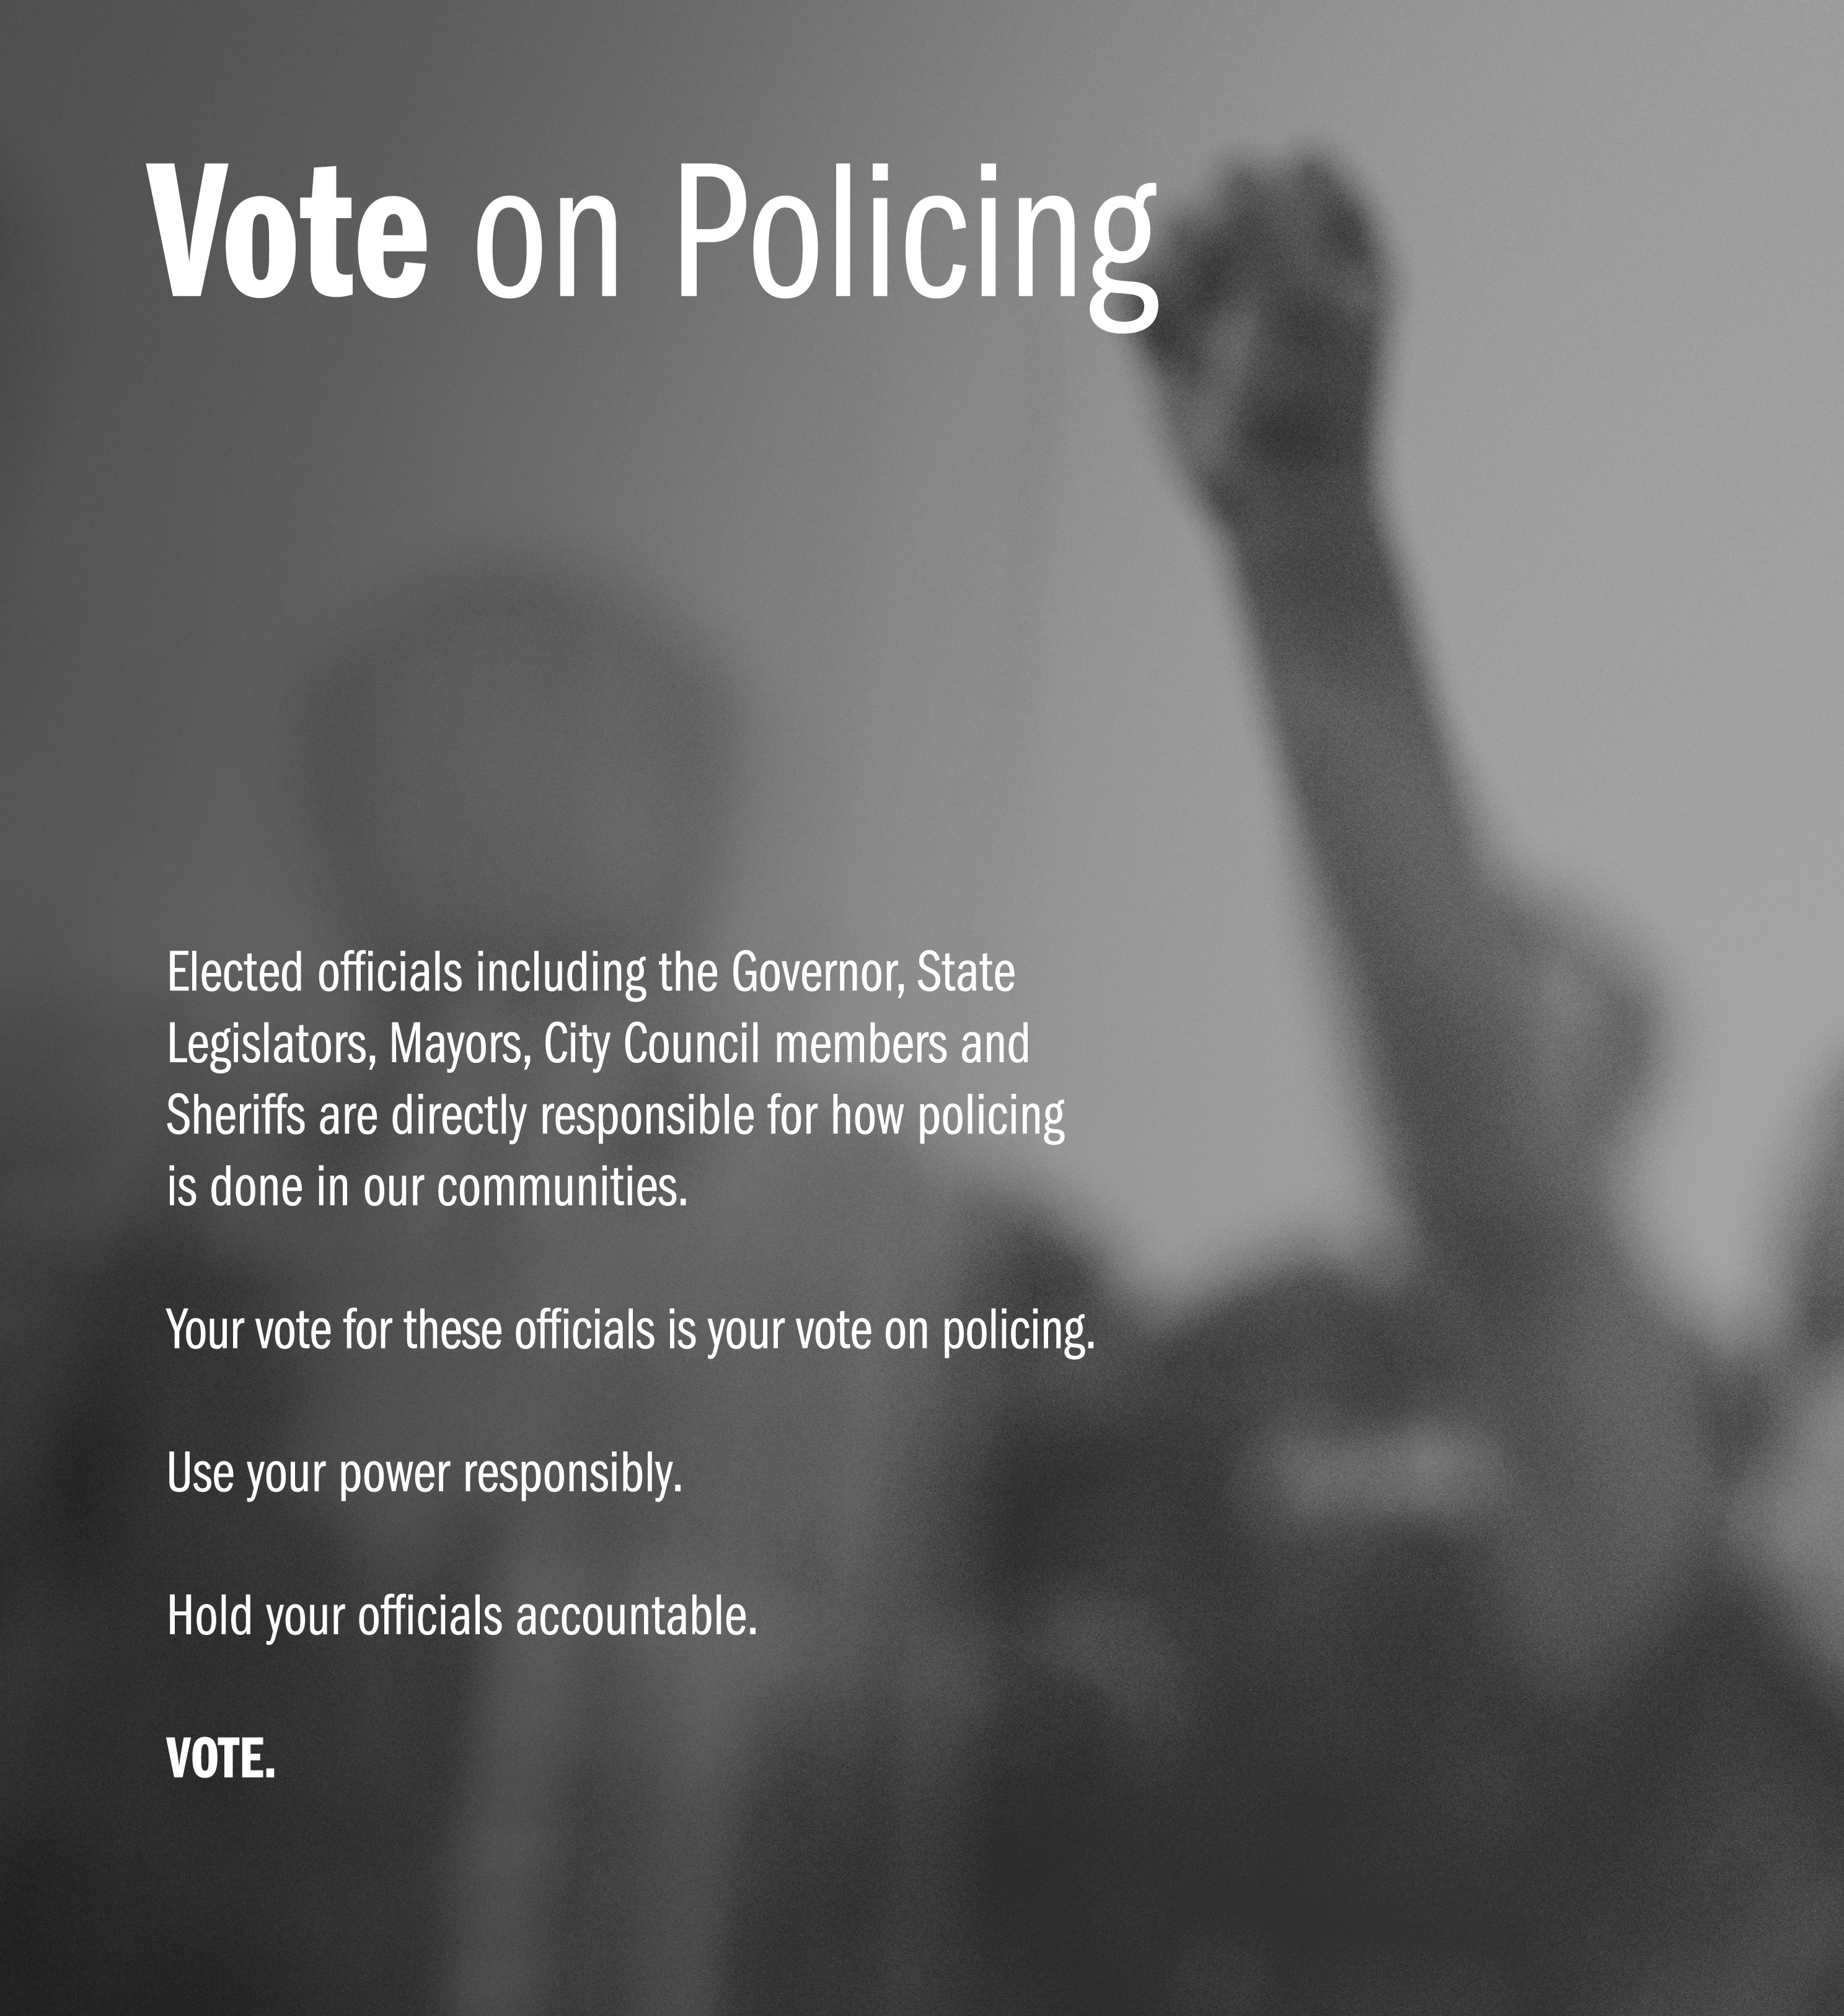 Your Vote for Elected Officials is Your Vote on Policing. Click here to learn why.